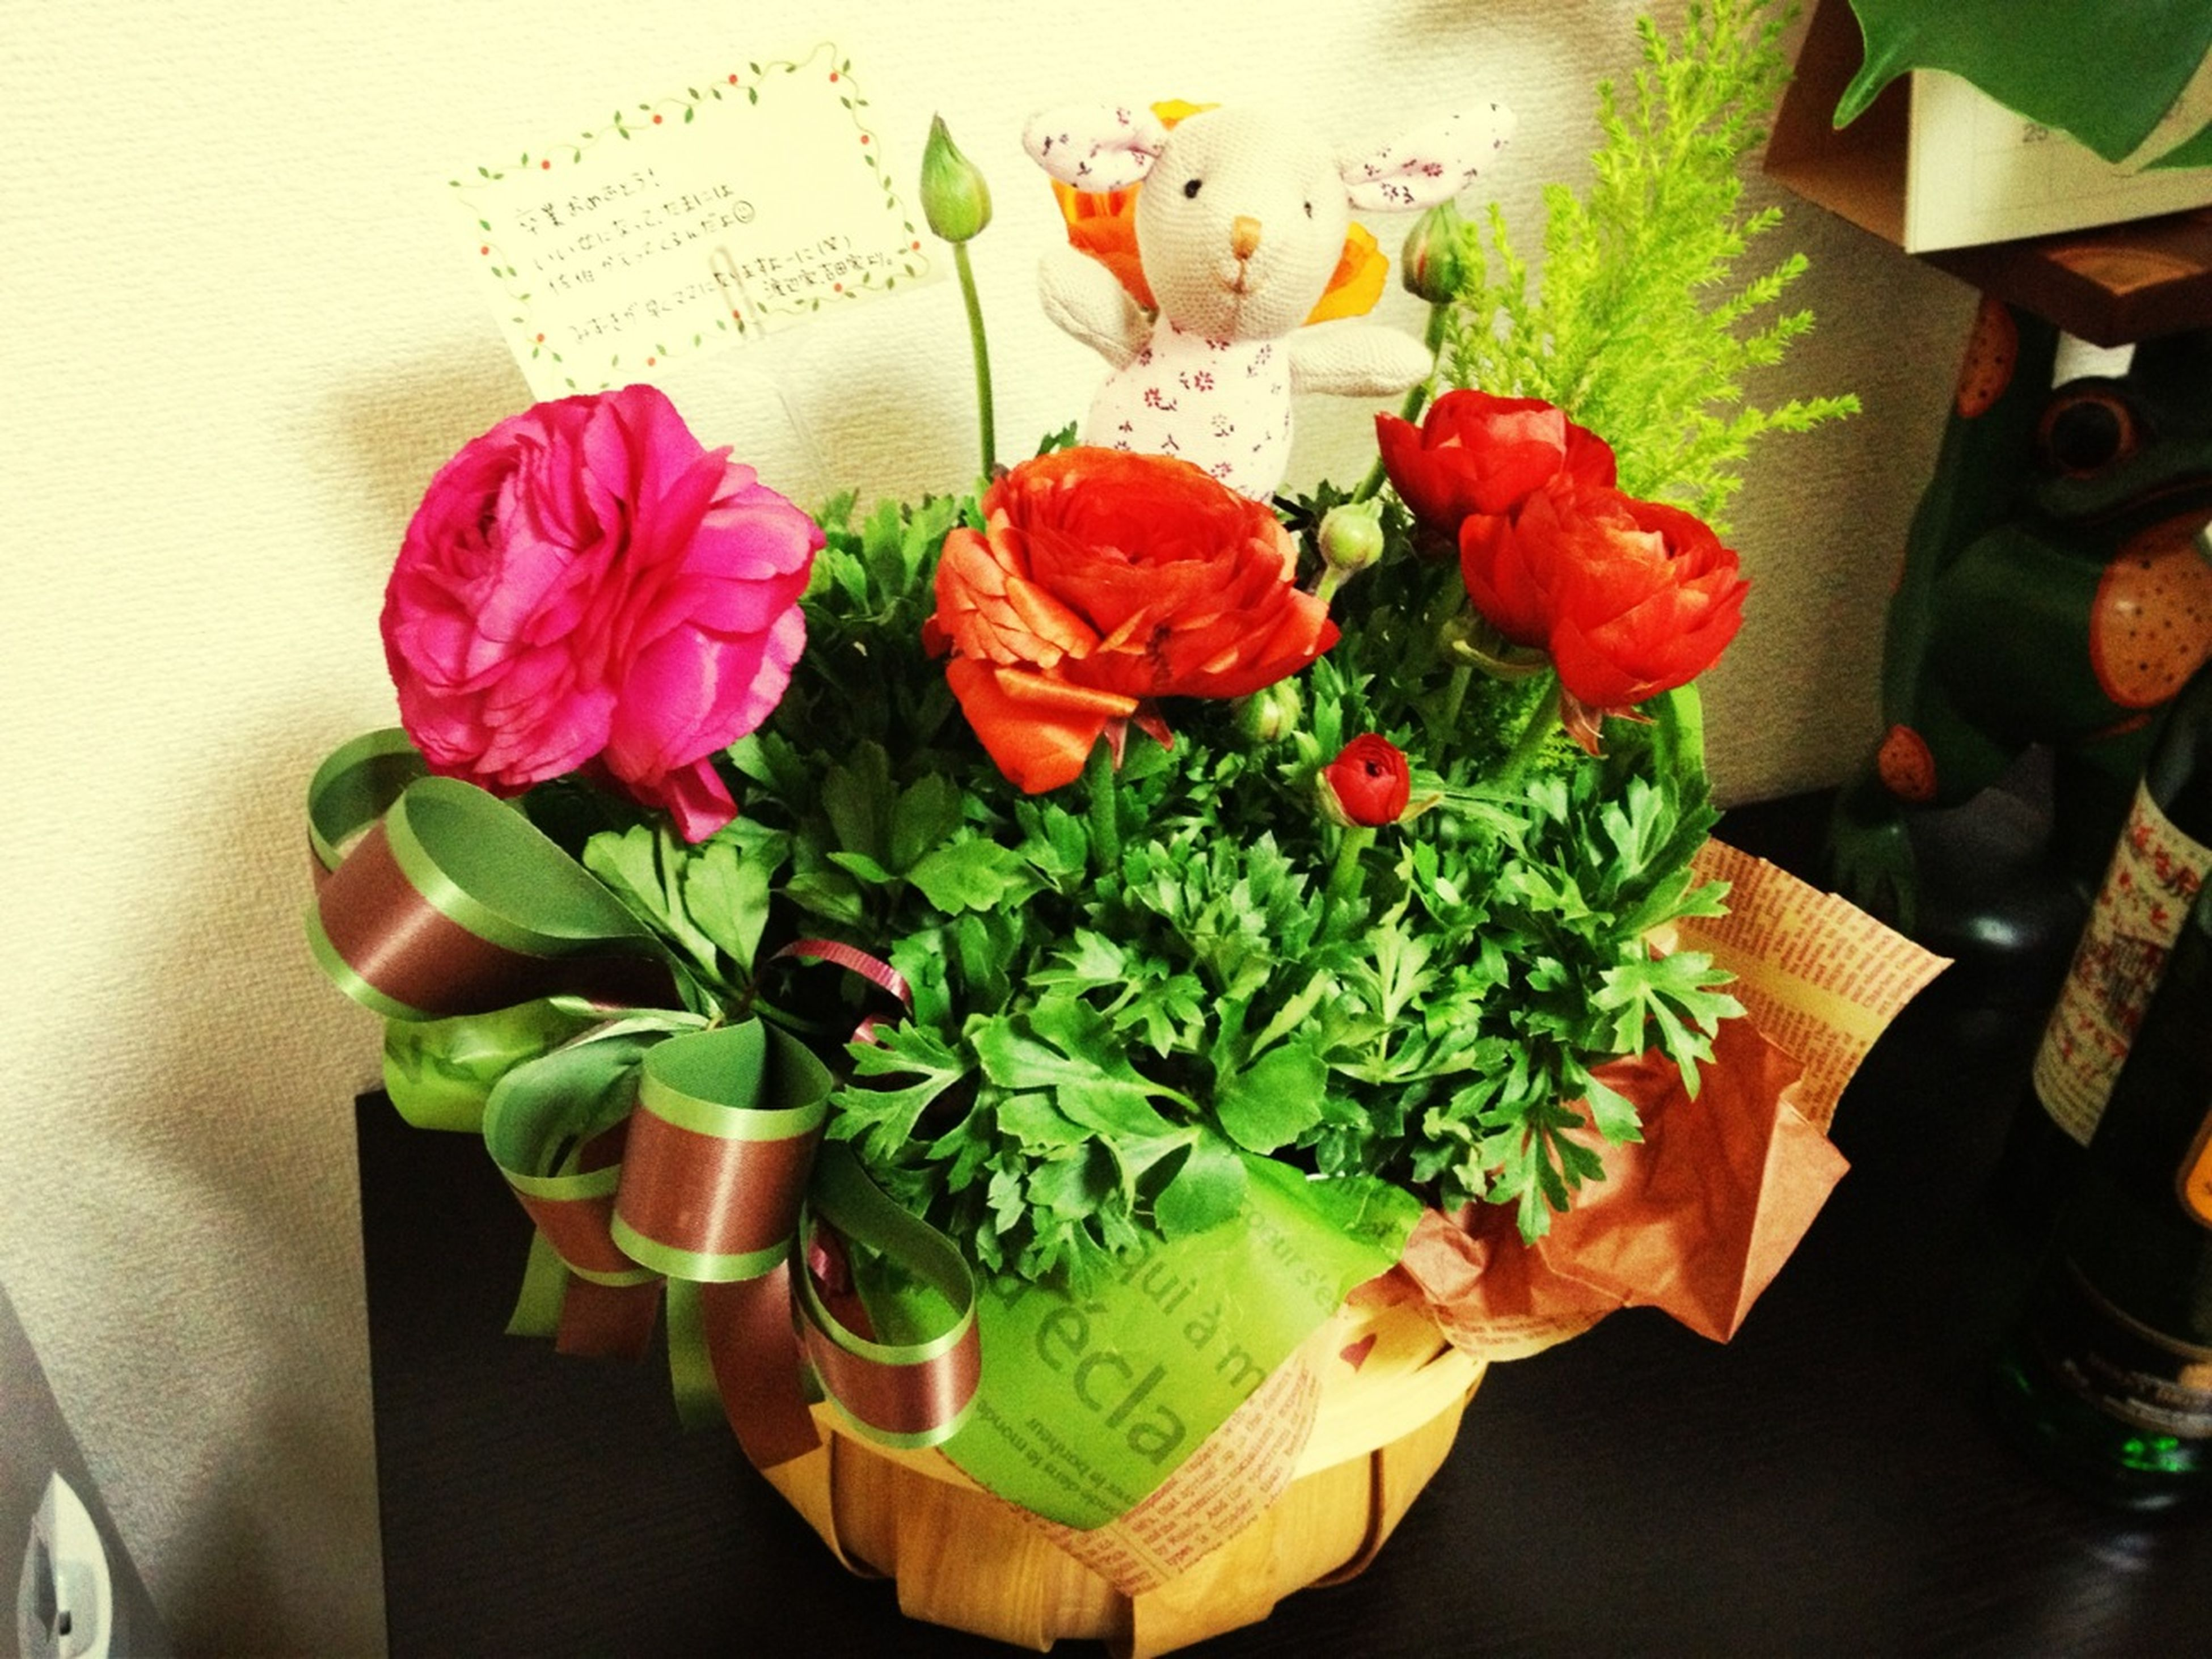 indoors, table, flower, still life, freshness, high angle view, variation, vase, close-up, arrangement, no people, fragility, petal, decoration, multi colored, paper, directly above, red, wood - material, flower arrangement